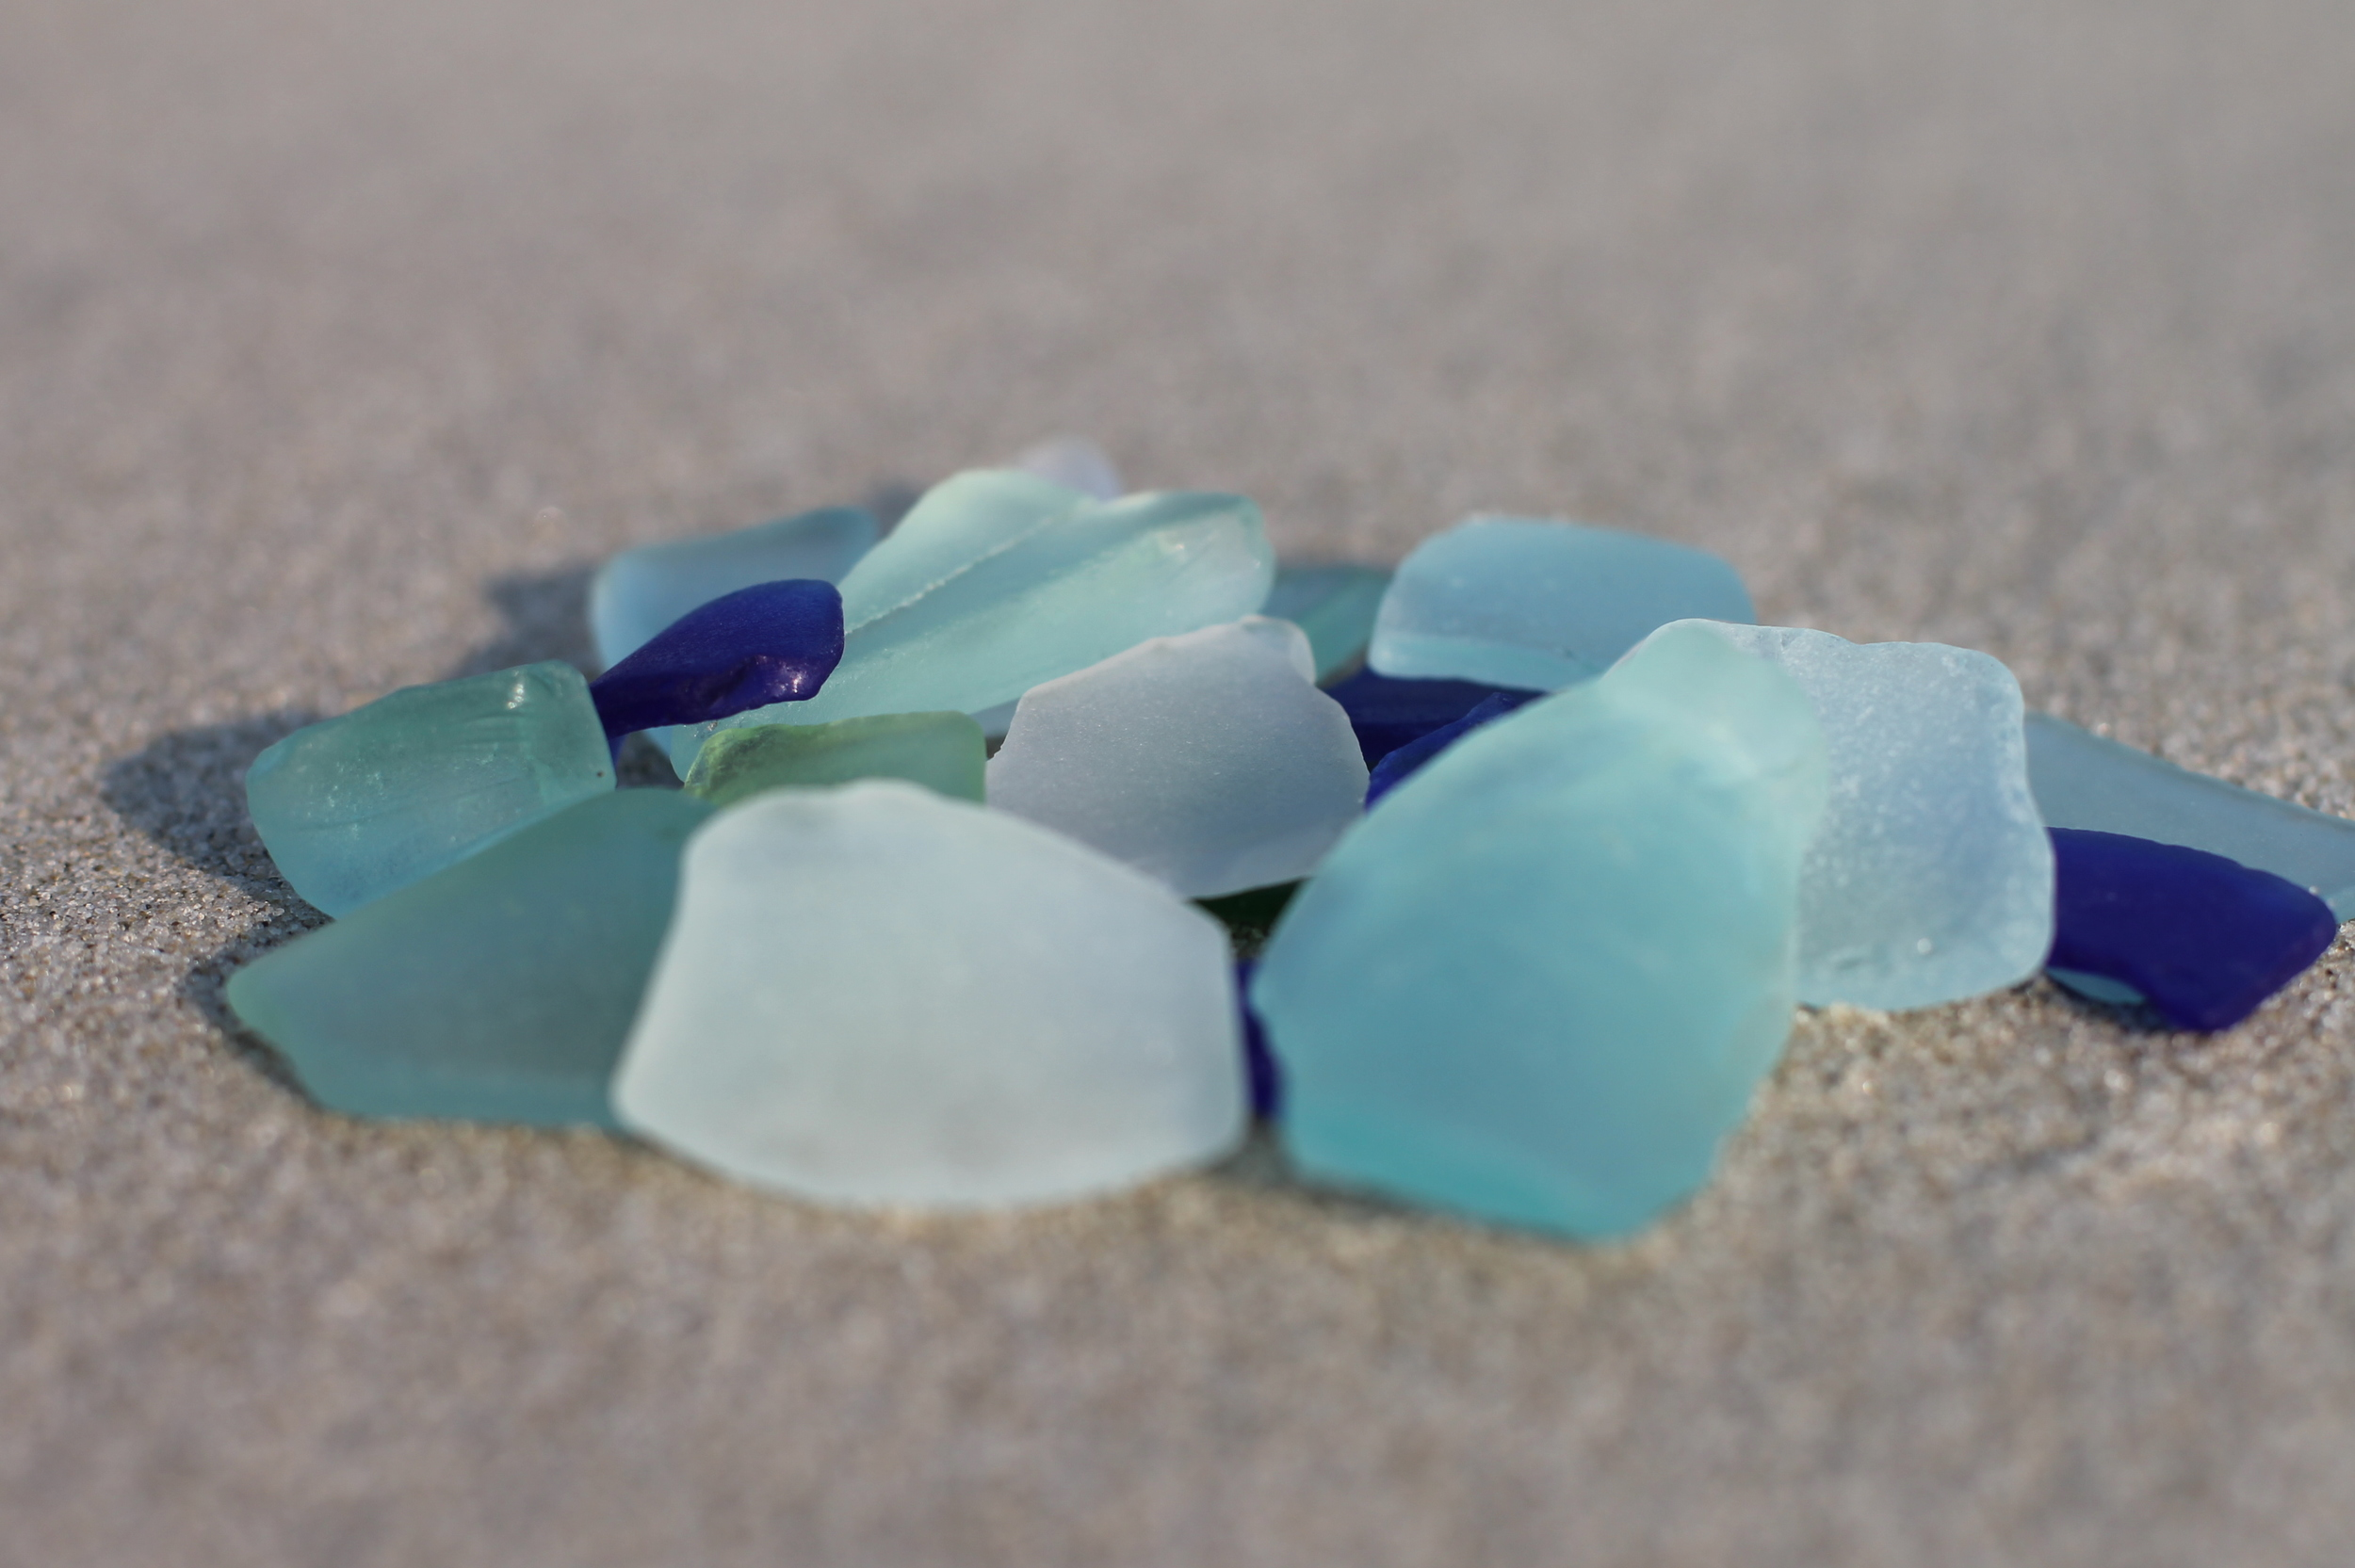 Stone-Harbor-Sea-Glass-1 (640x426)